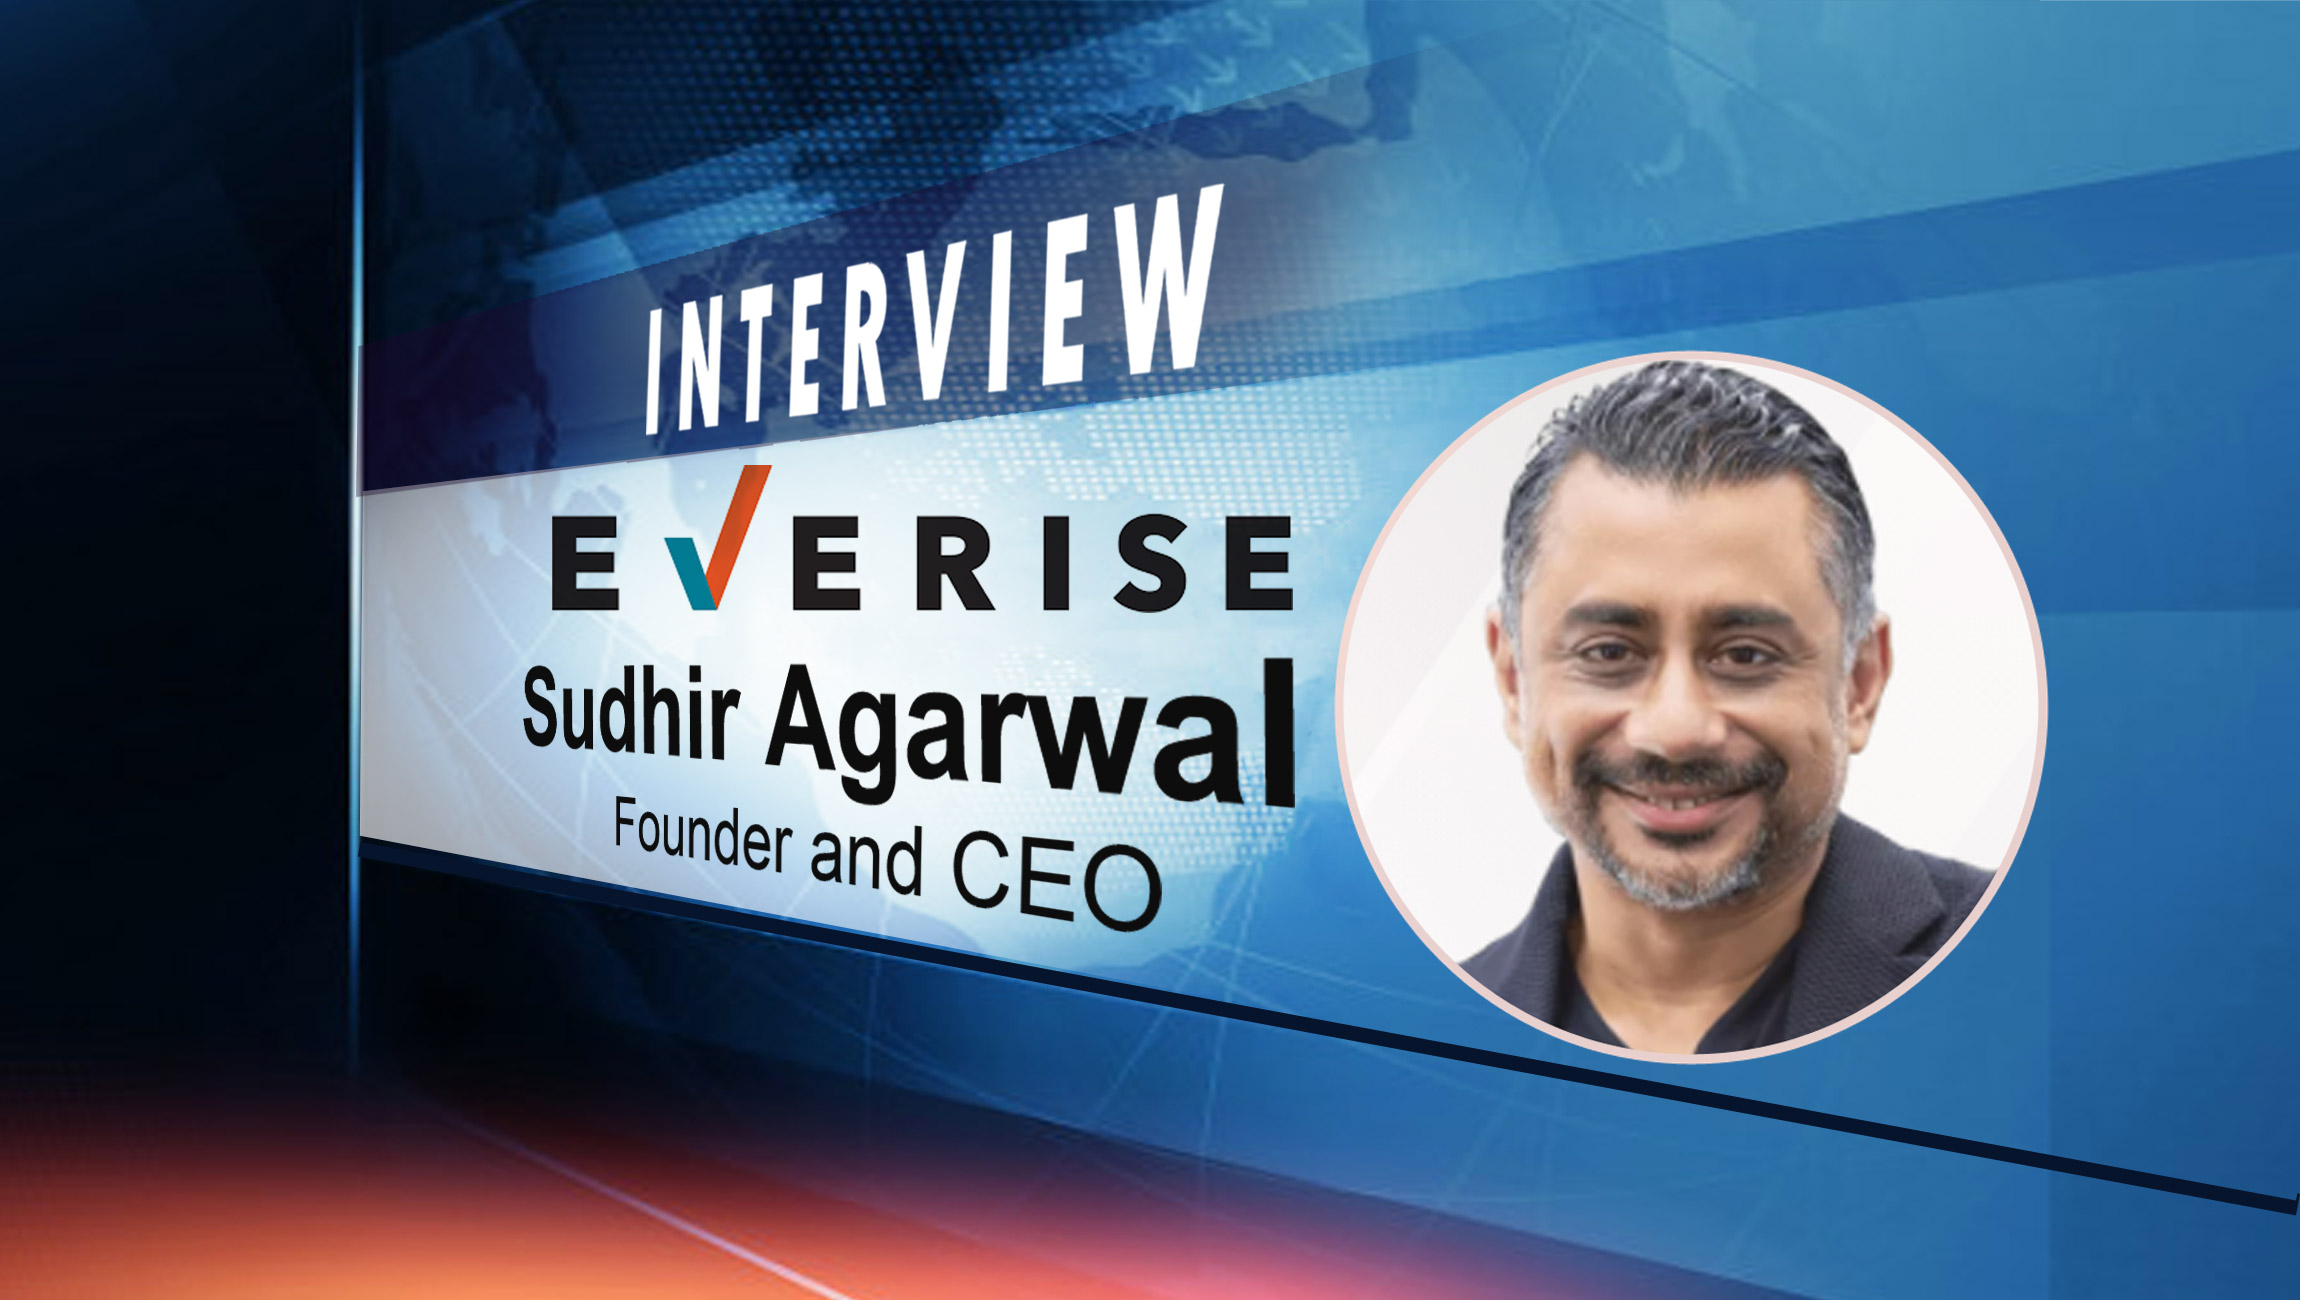 SalesTechStar Interview with Sudhir Agarwal, Founder and CEO at Everise